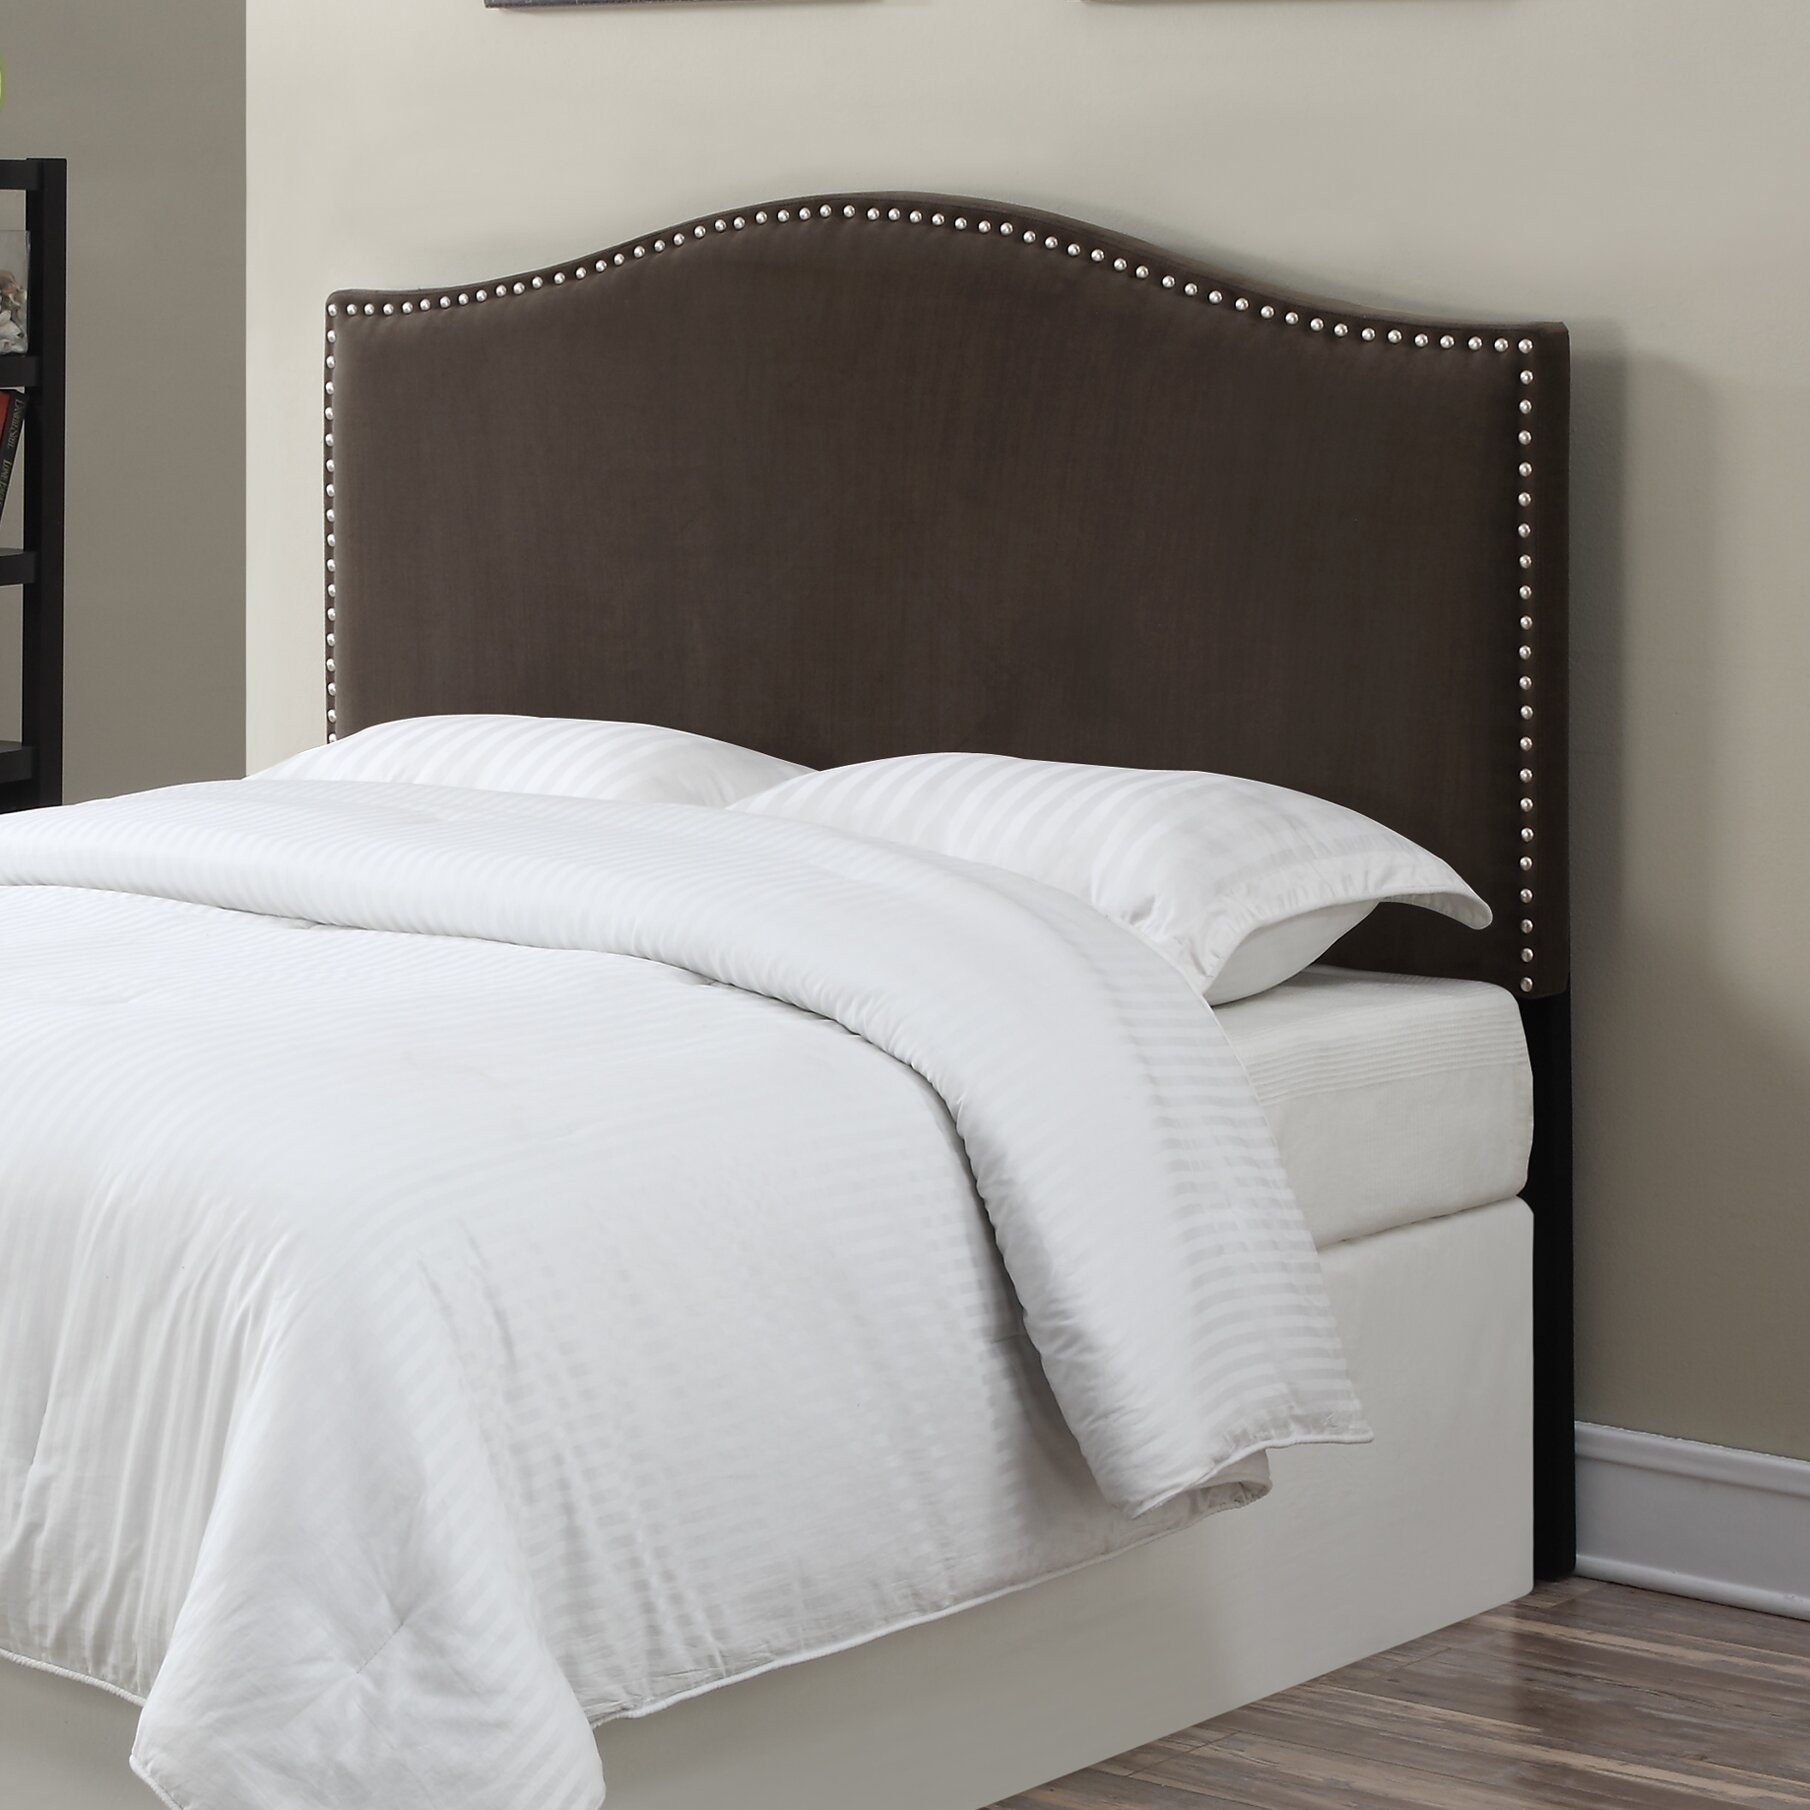 Noleta Upholstered Headboard